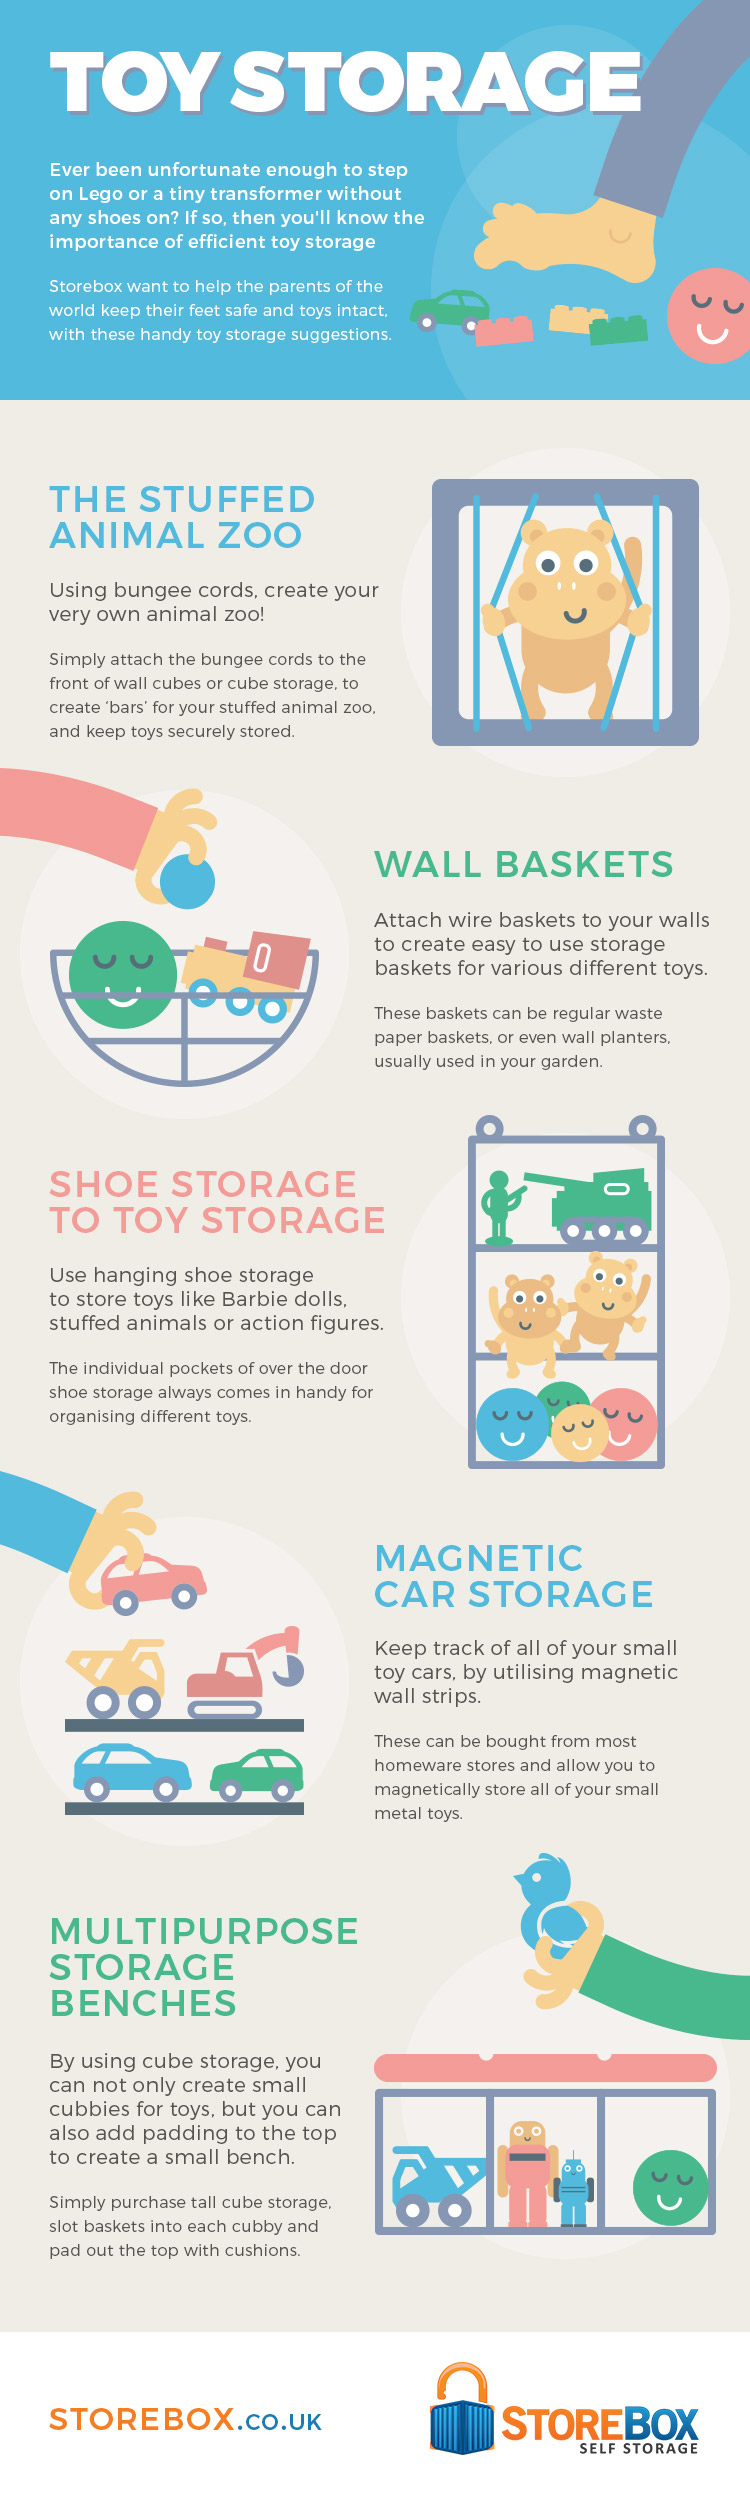 Getting creative with your toy storage ideas